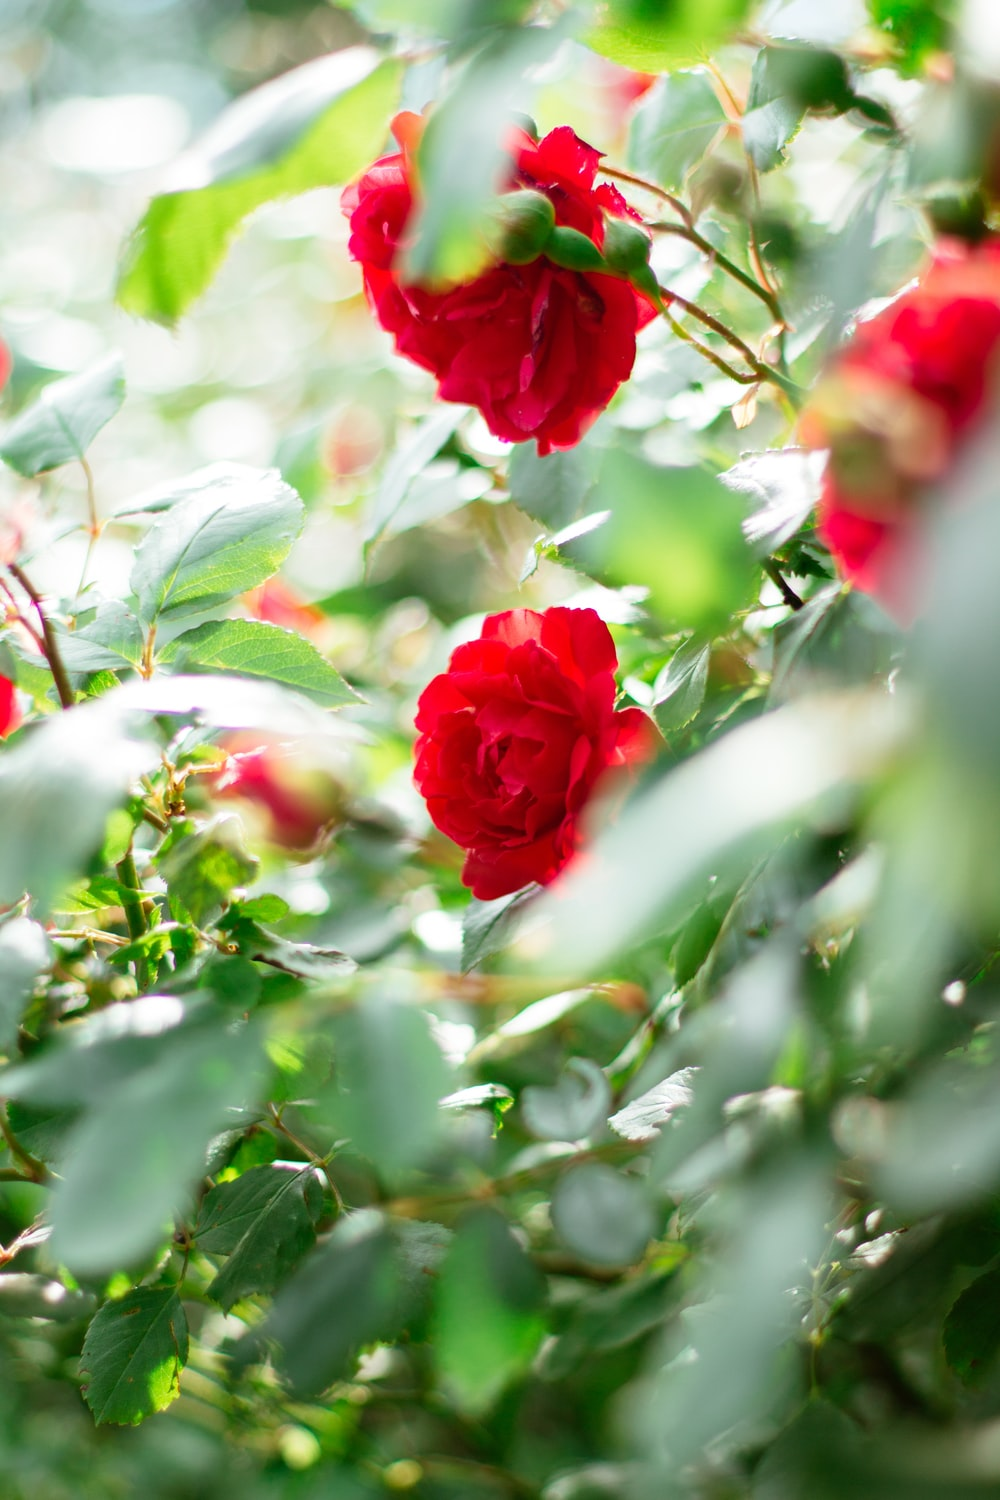 red roses in bloom during daytime